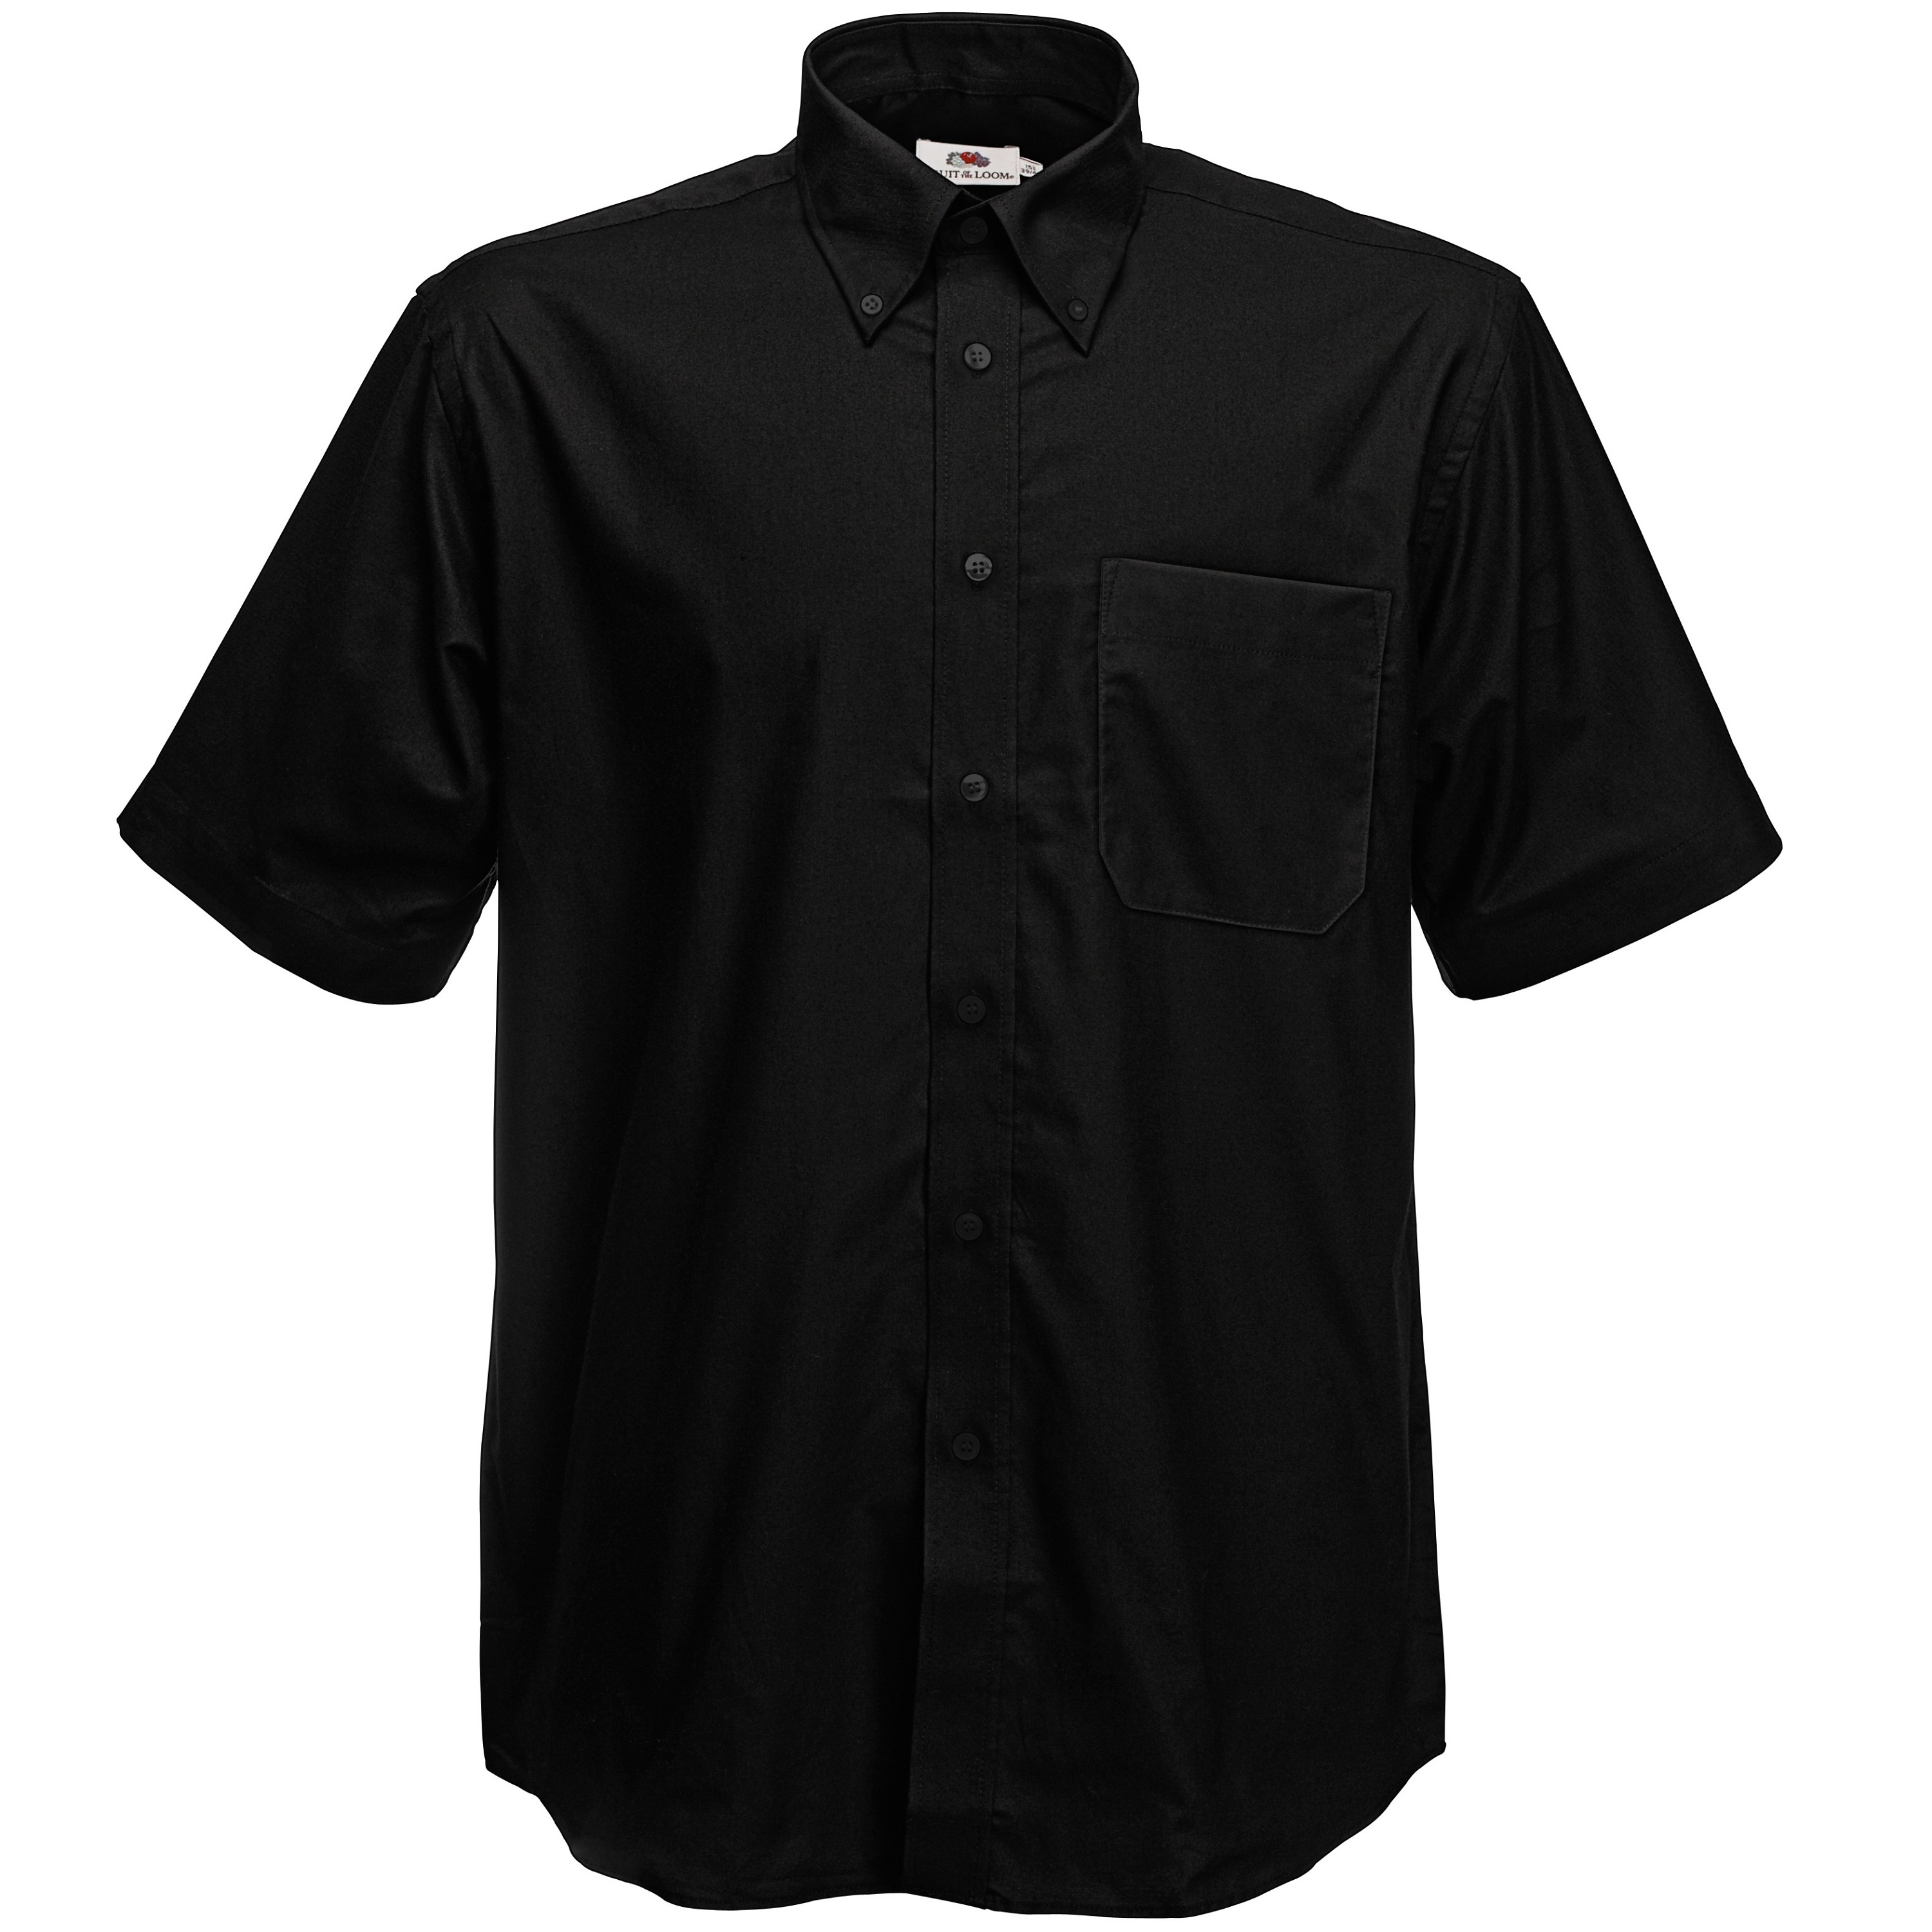 Ss112 oxford short sleeve shirt gdb manufacturing for Black and white short sleeve shirts